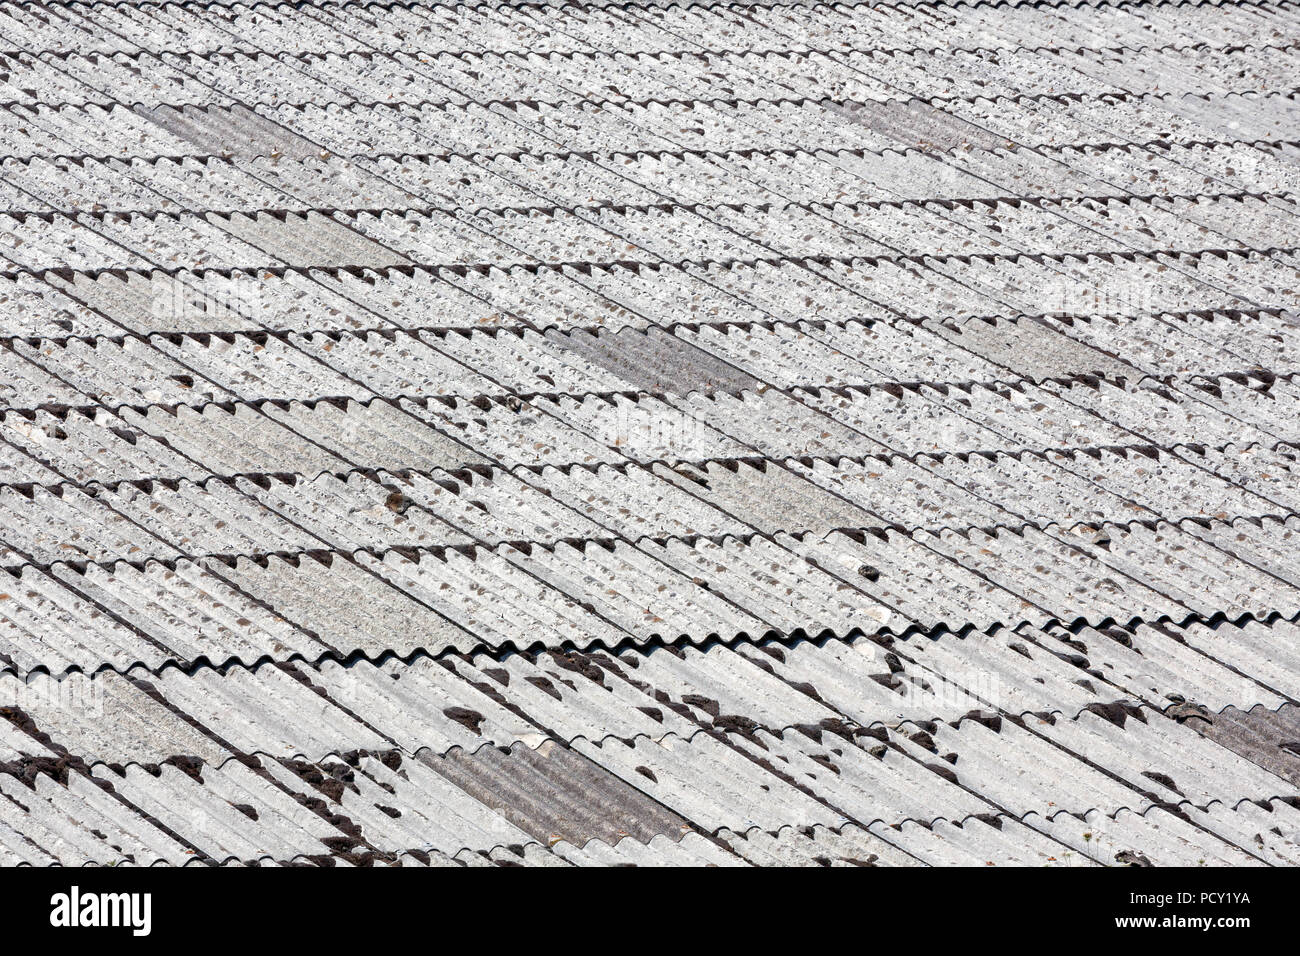 Surface of an old large corrugated Asbestos Cement or AC sheet or Fibro sheeted roof. - Stock Image